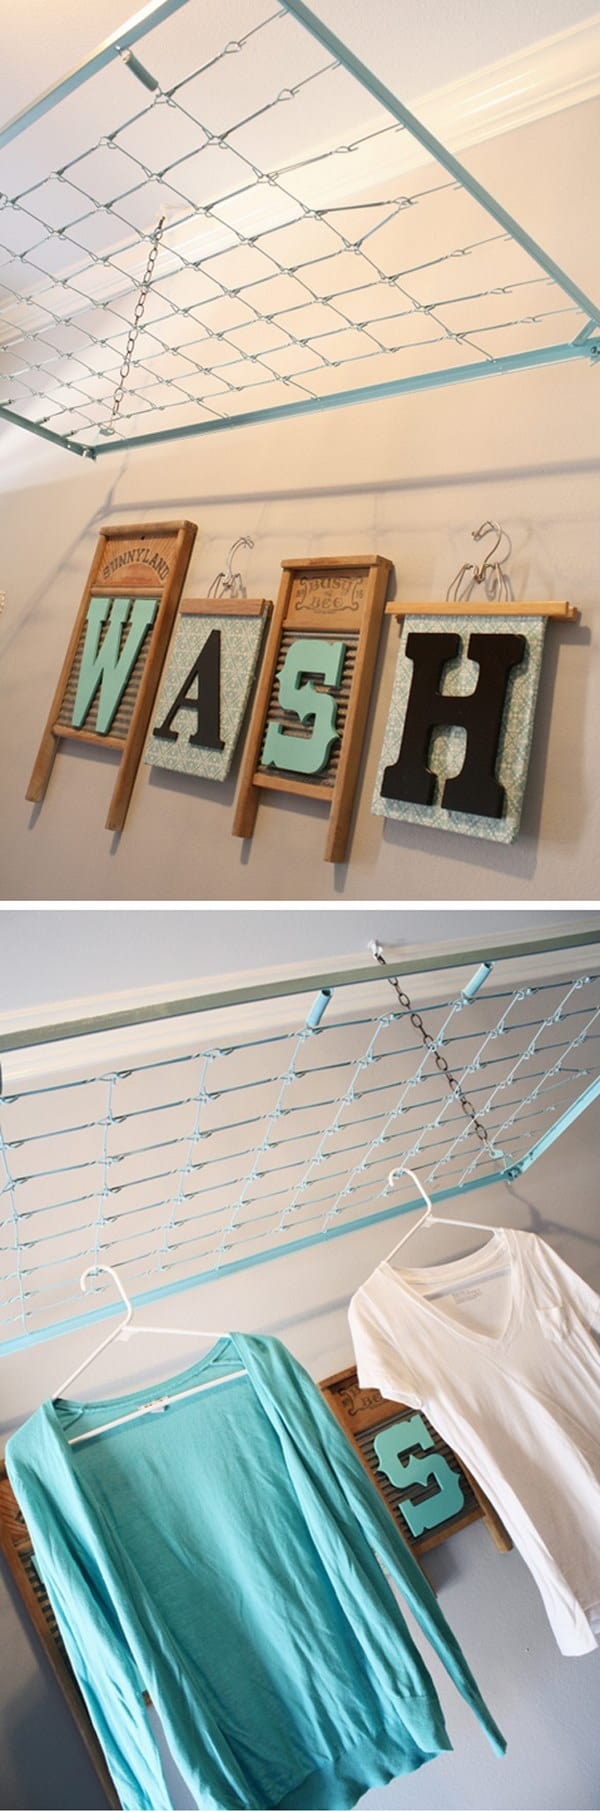 Brilliant Laundry Room Organization Hacks